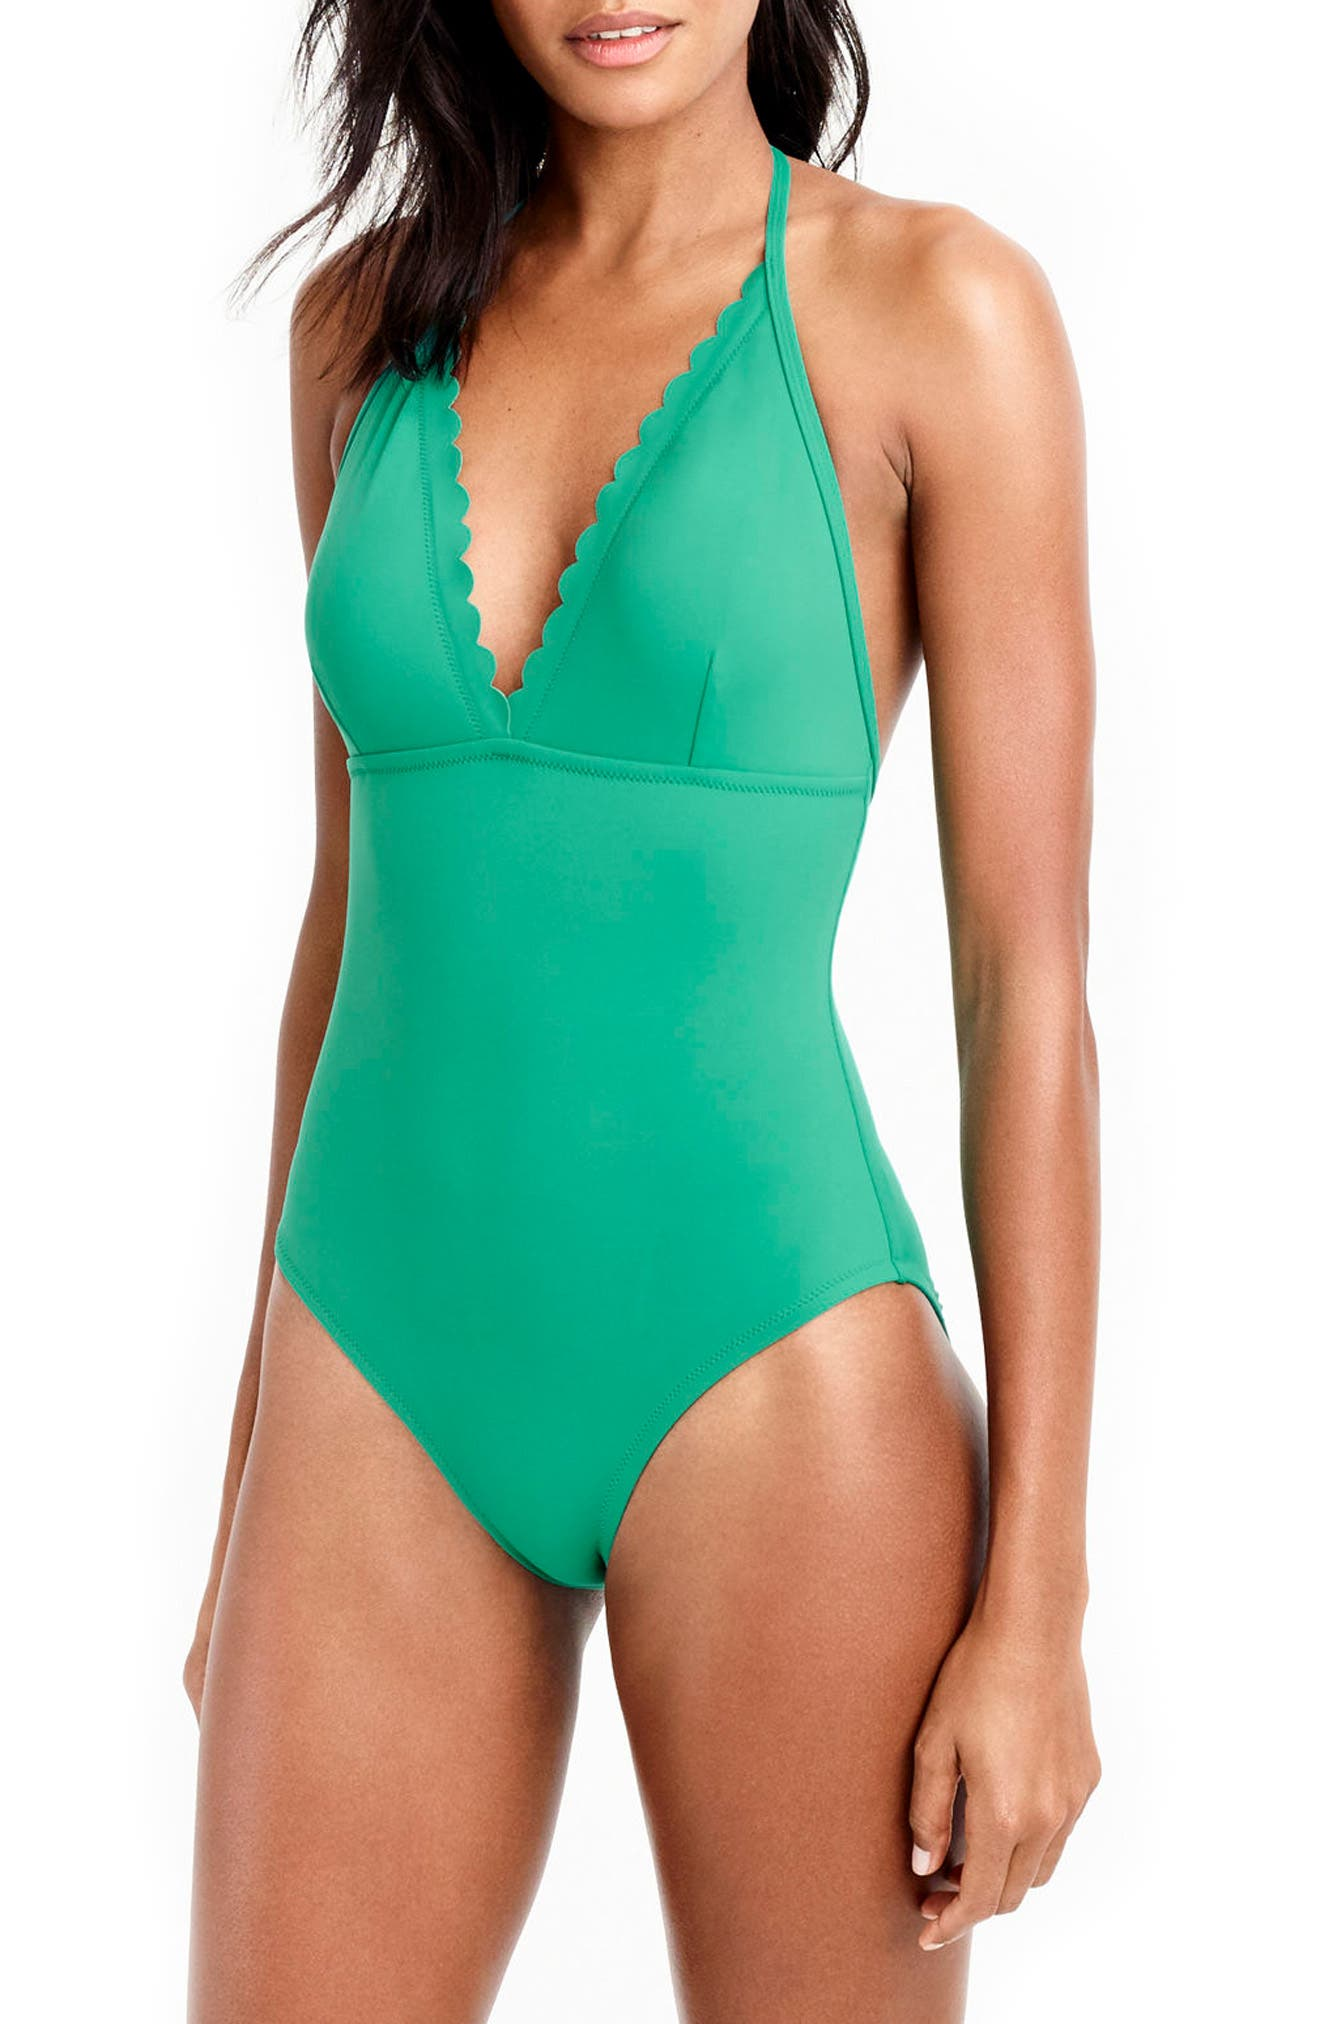 Alternate Image 1 Selected - J.Crew Scallop One-Piece Swimsuit